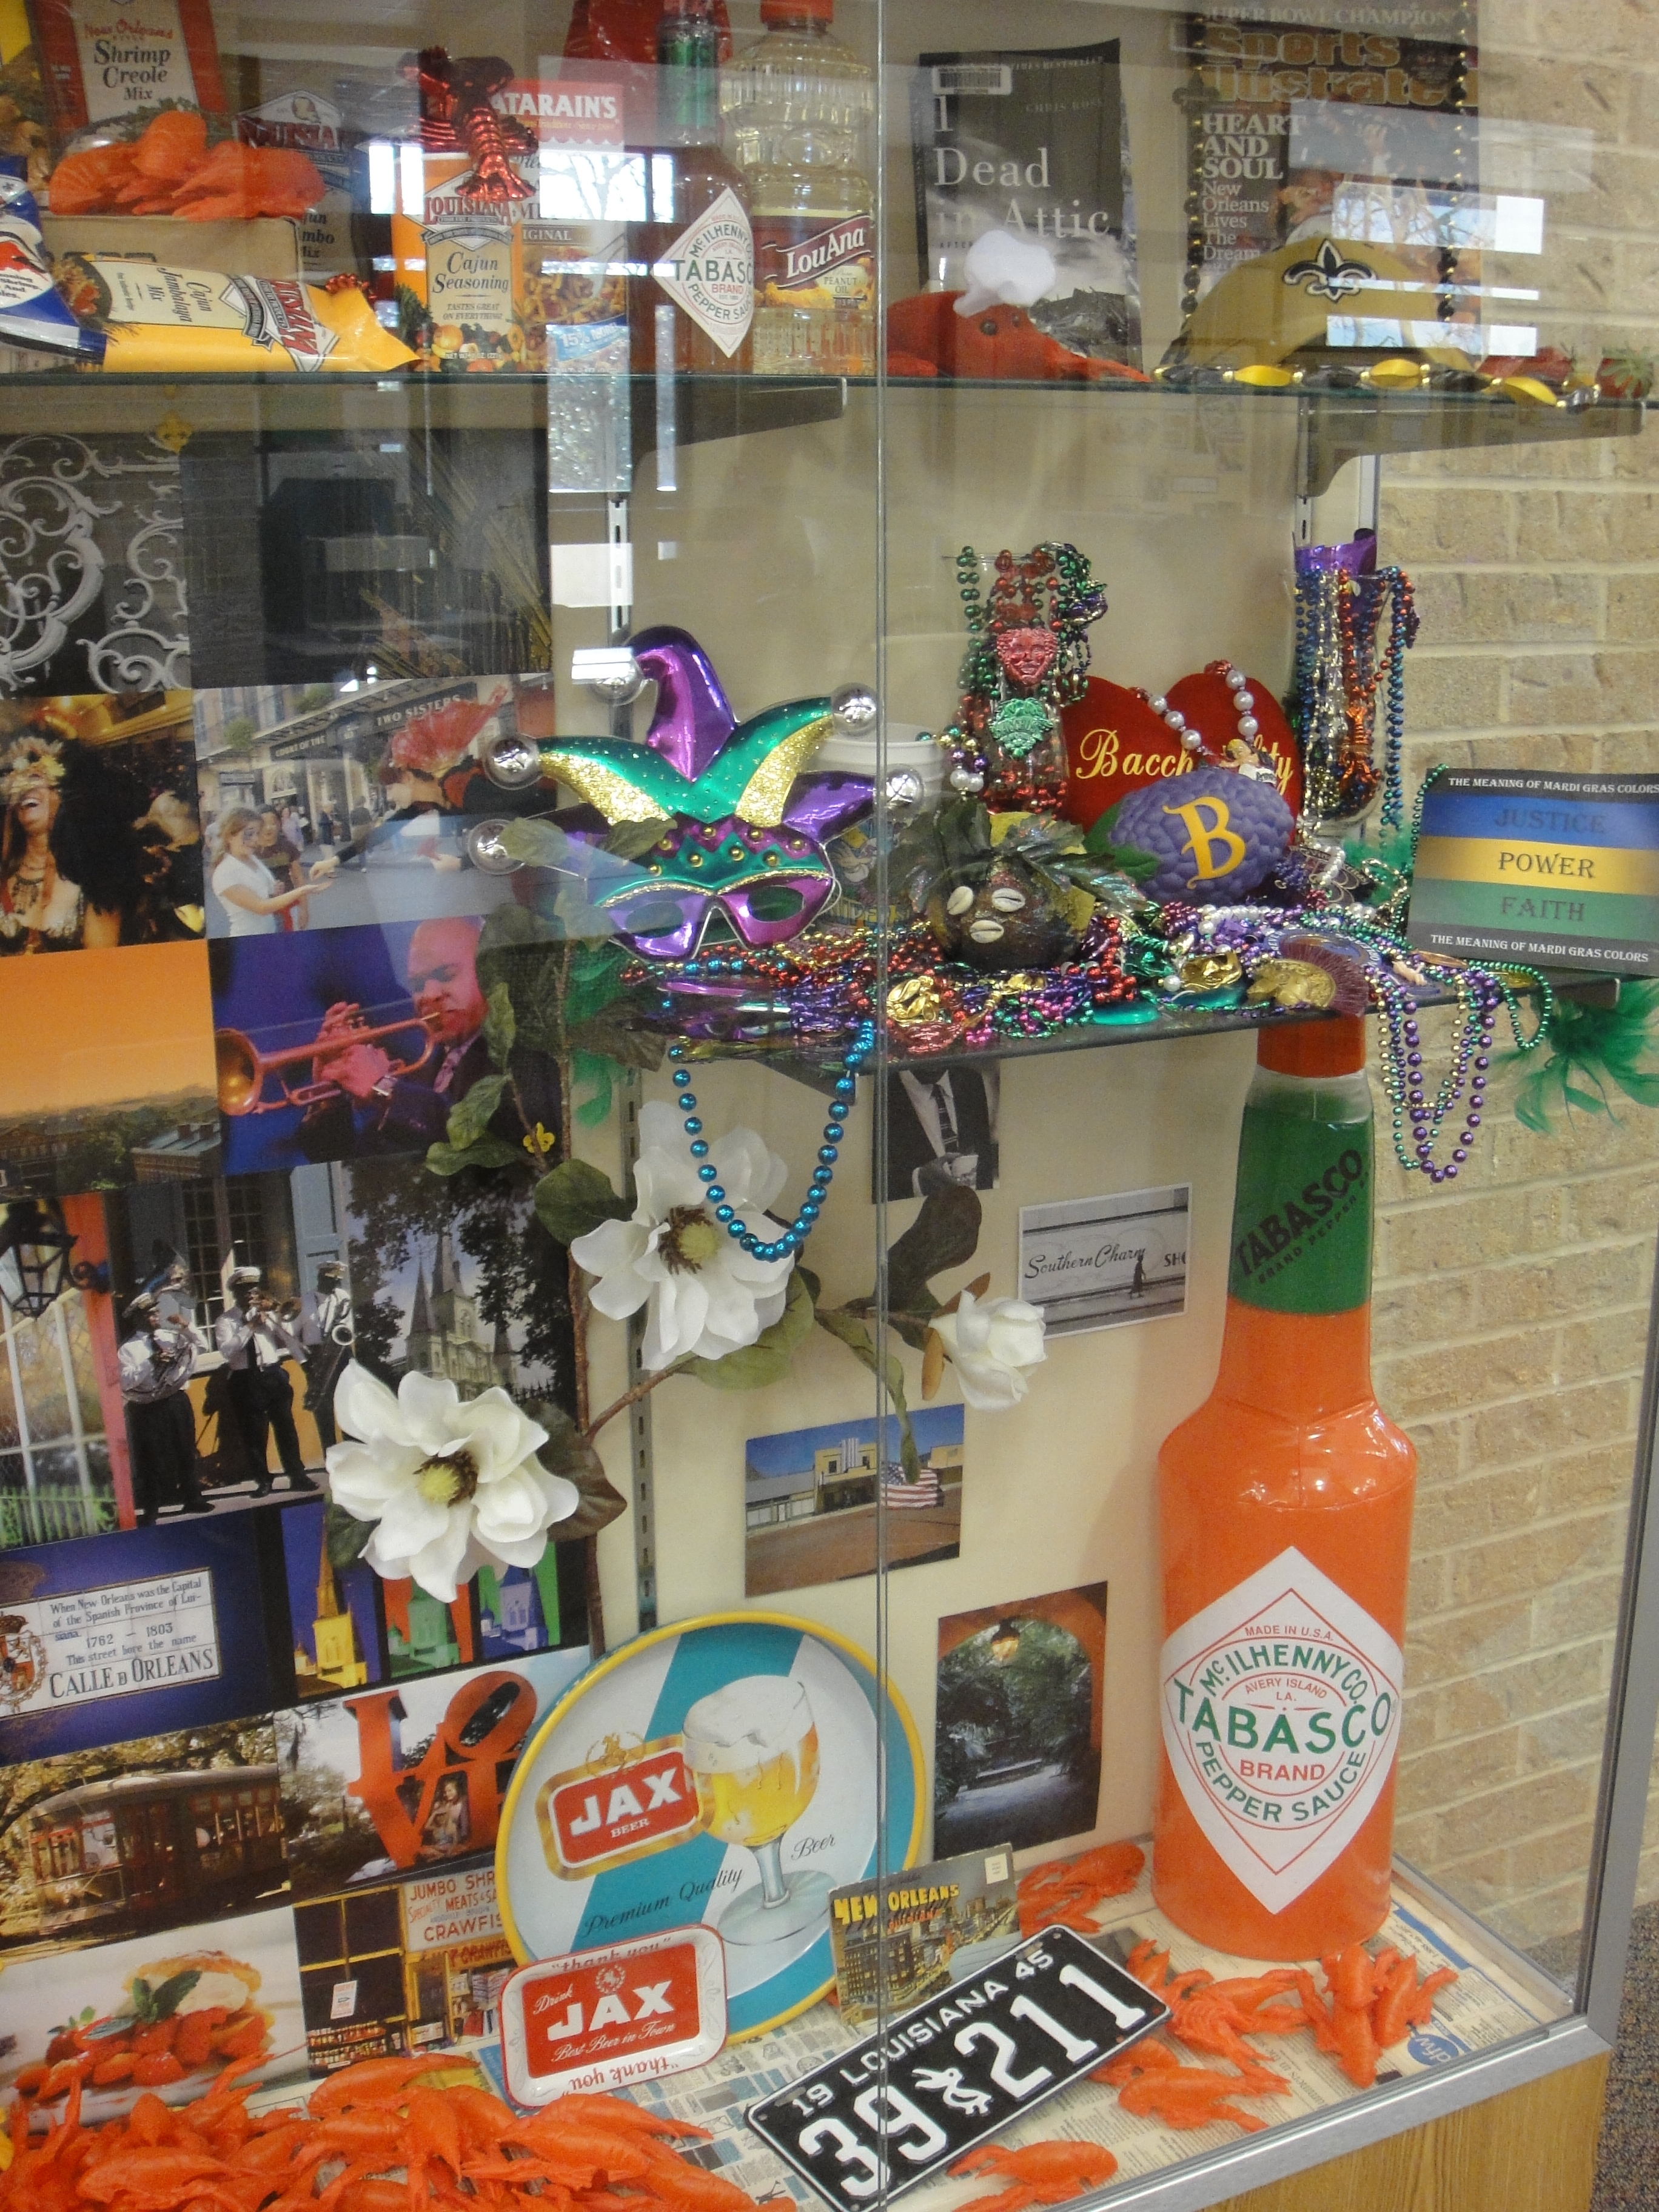 photo of library exhibit displaying New Orleans related items